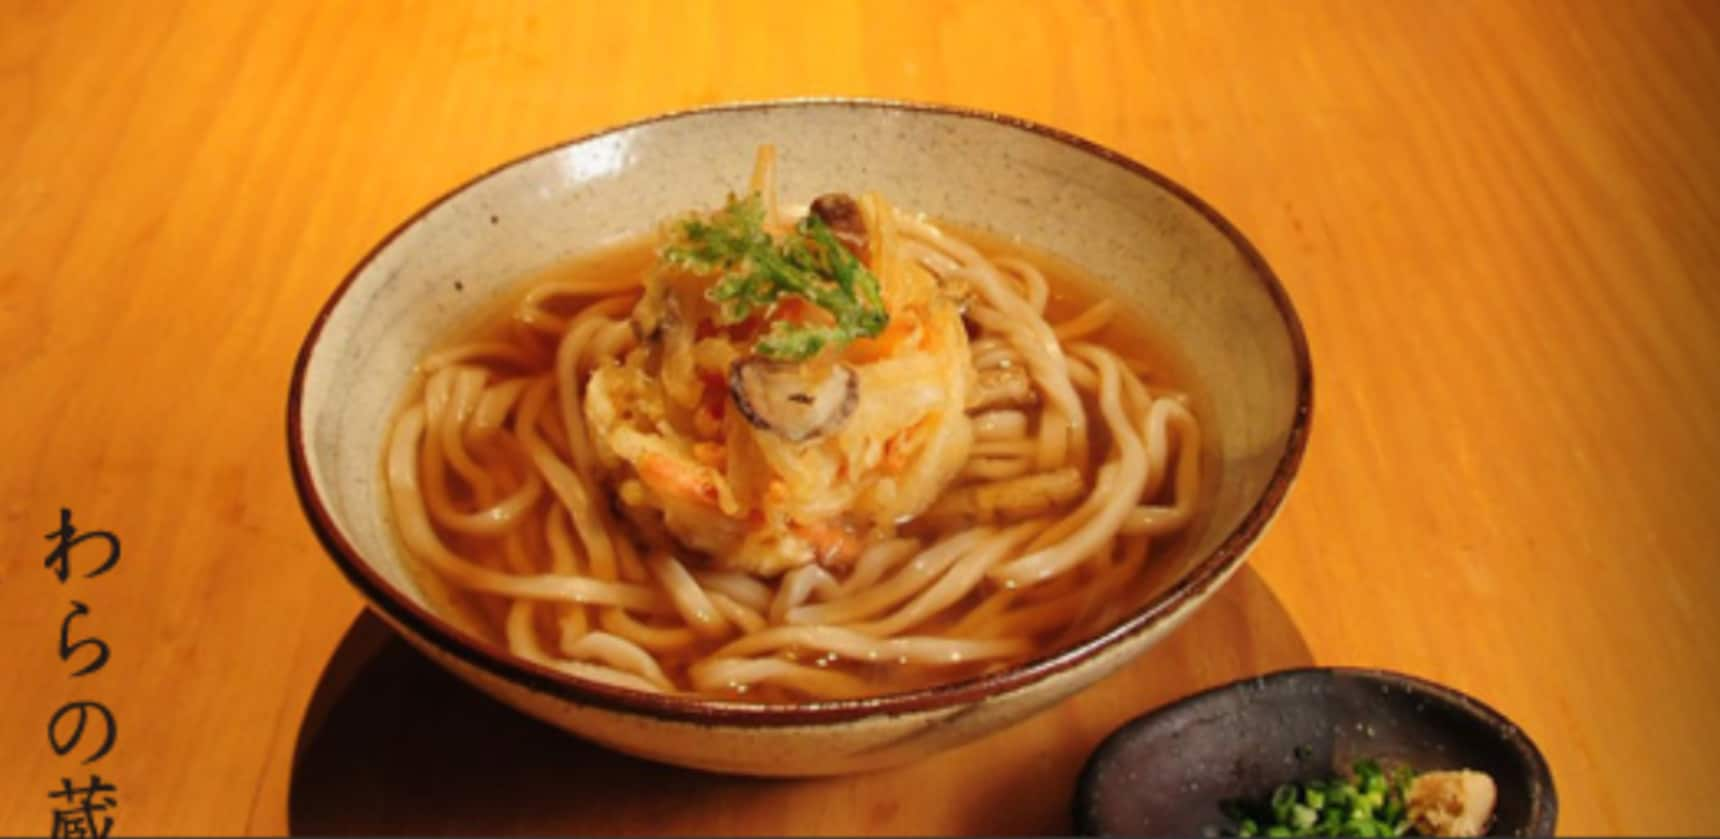 Dine on the Best Udon in Fukuoka